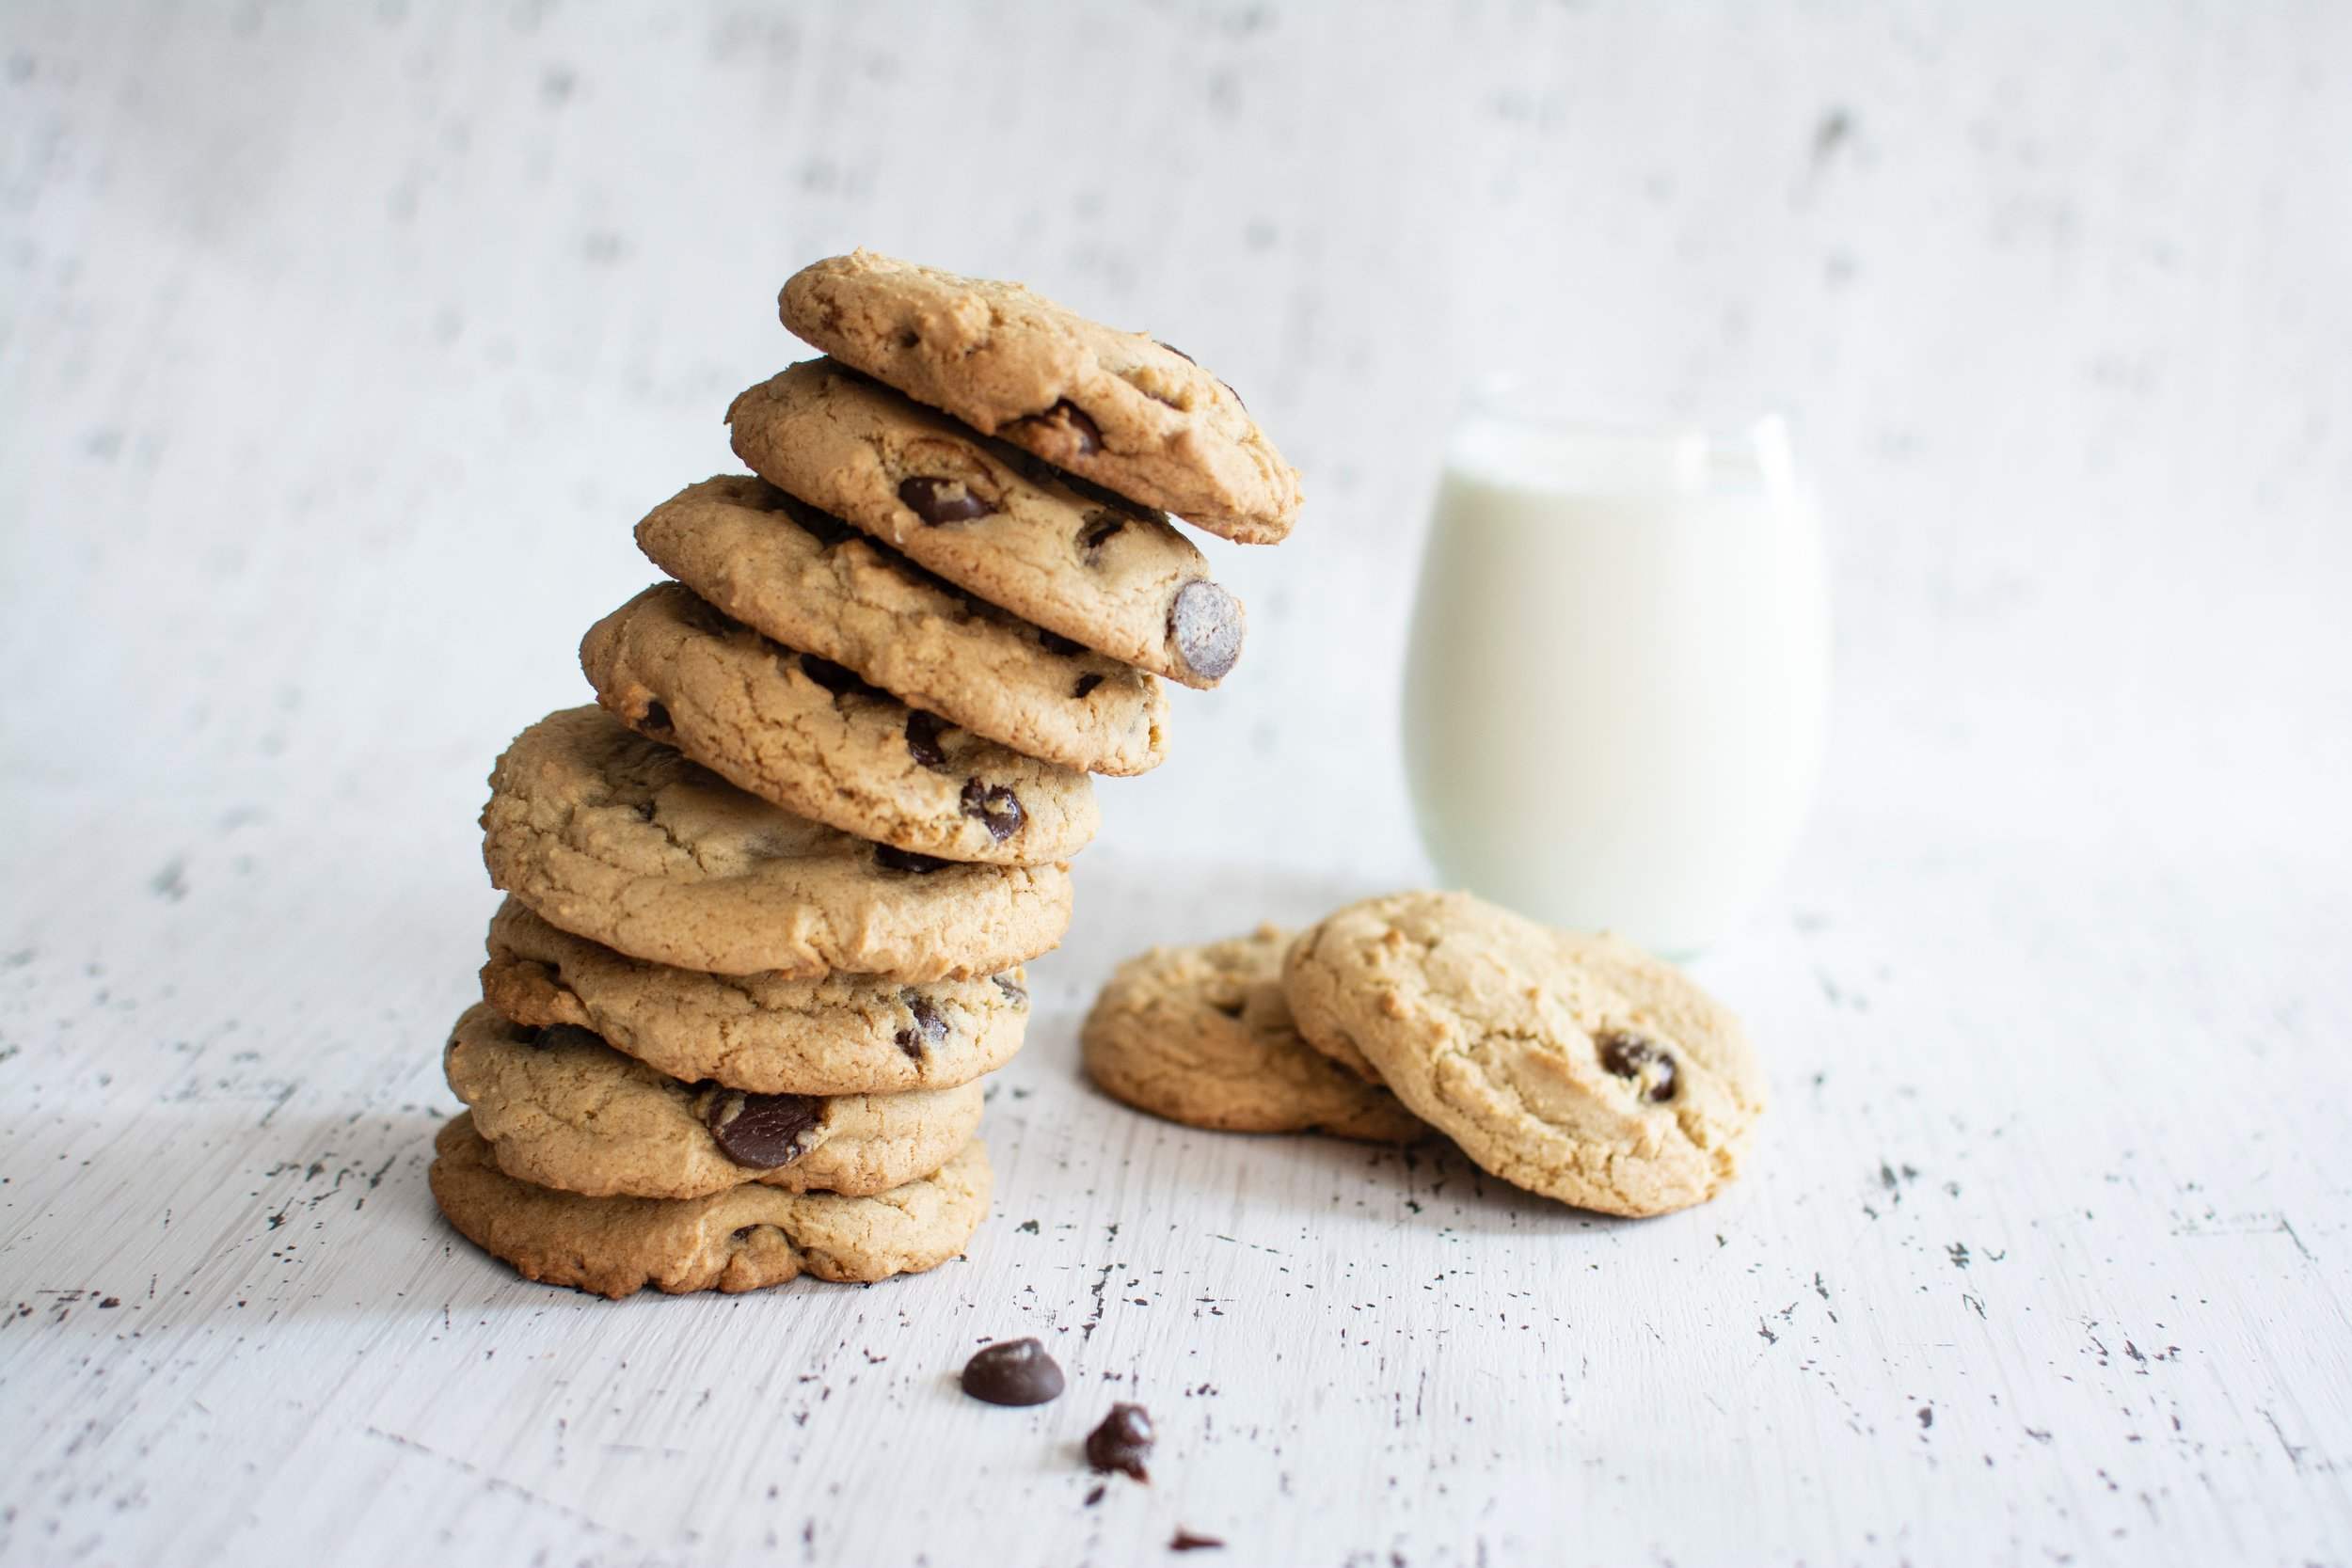 Pila de galletas Cookies sobre mesa blanca © Photo by  Christina Branco  on  Unsplash